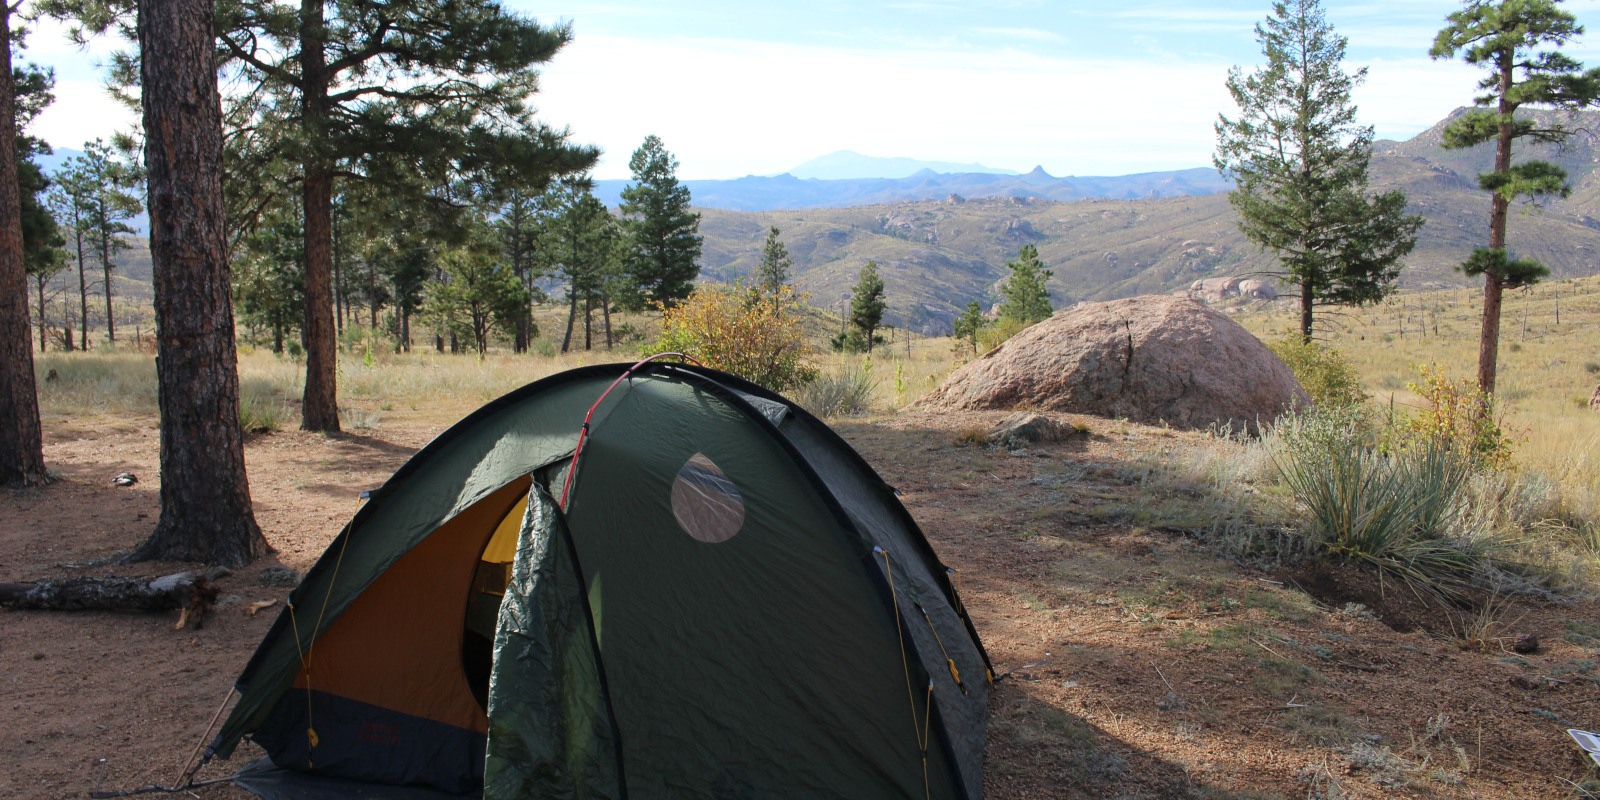 Choosing the rent tent for camping